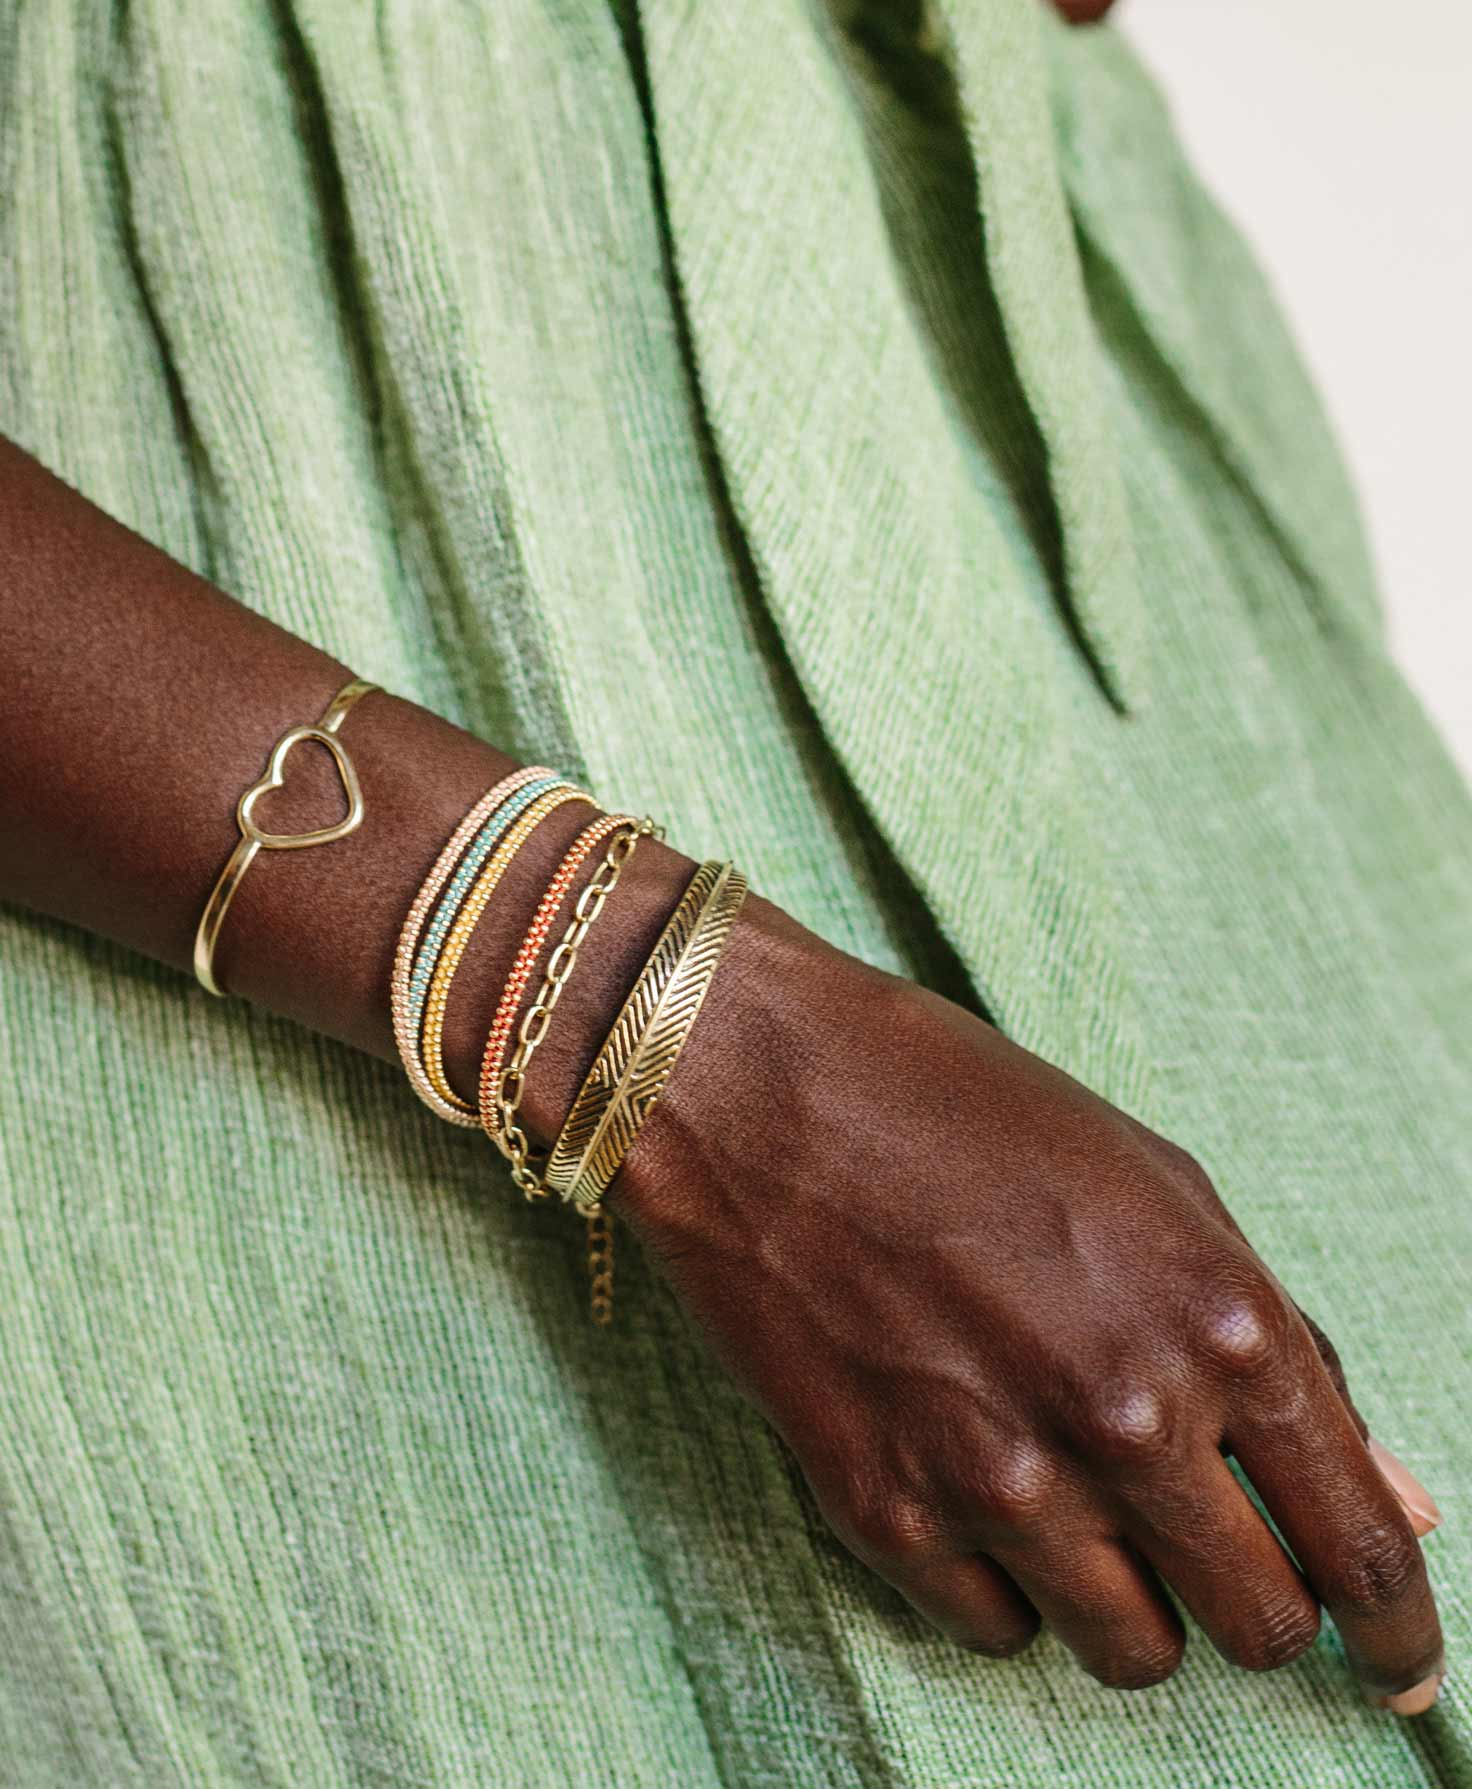 A model's arm is shown resting against her side. On her wrist she wears the Expression Cuff paired with a stack of other bracelets, including the Color Blocked Wrap Bracelet, Apex Cuff, and Infinity Bracelet.